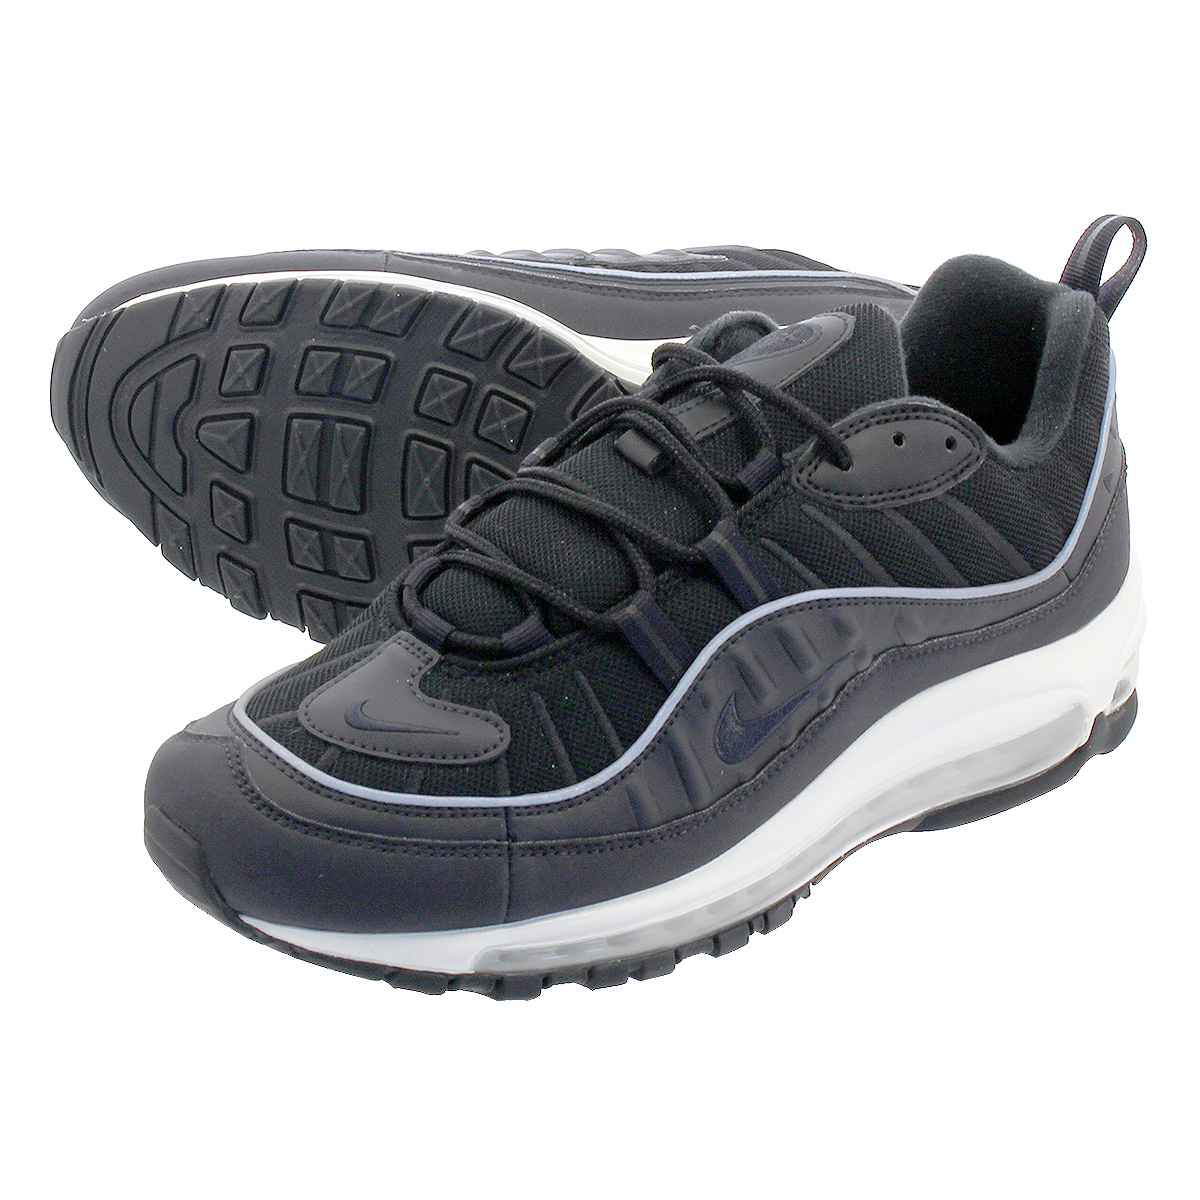 LOWTEX PLUS  NIKE AIR MAX 98 Kie Ney AMAX 98 OIL GREY BLACK SUMMIT ... 5e88331f378d